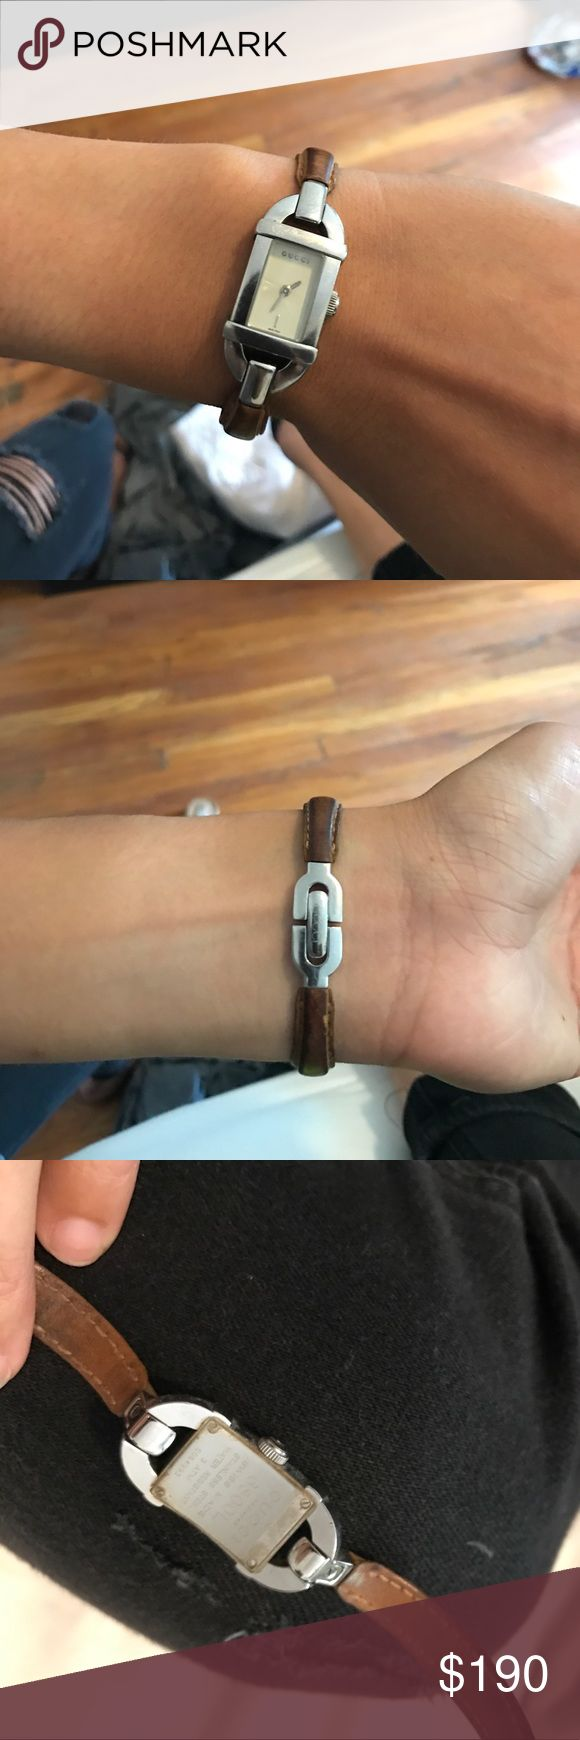 Gucci Stainless and Leather 6800I Watch Gucci designer ladies watch 6800I, brown leather band, stainless steel case, quartz movement. Marked on back with details. EUC. Love it but don't wear now that I have an Apple Watch. Gucci Accessories Watches